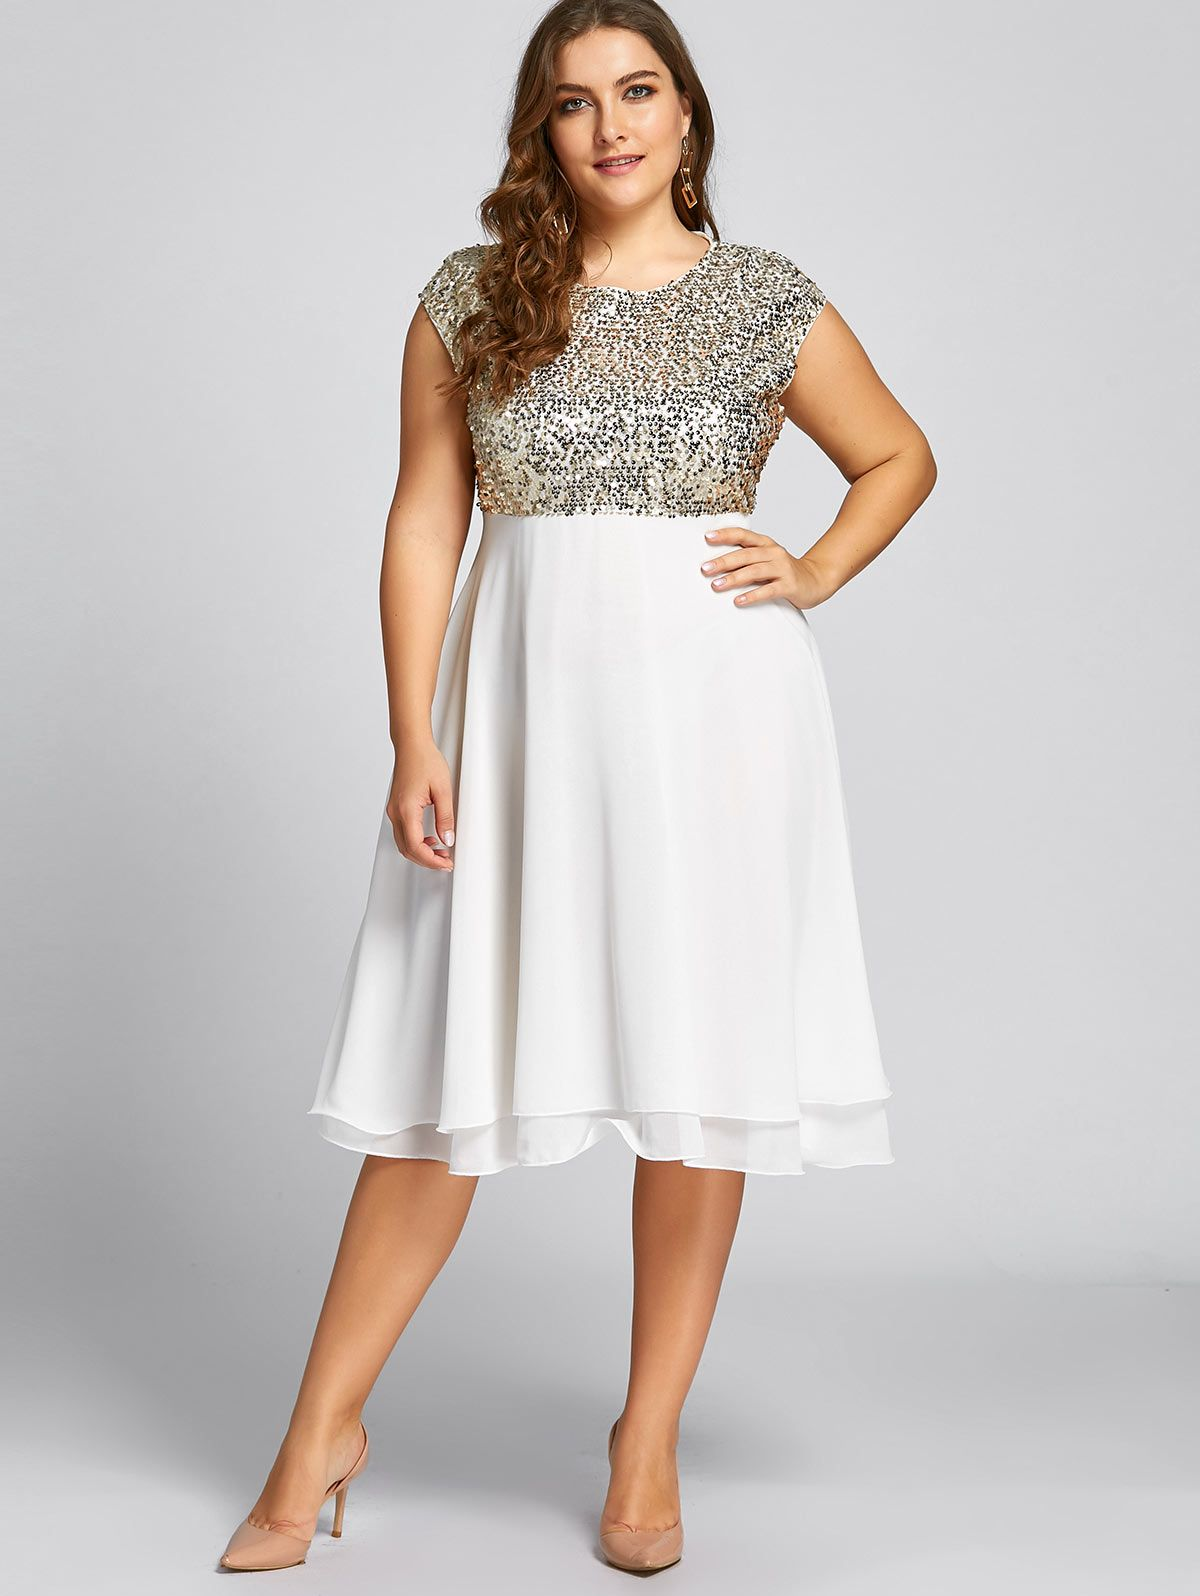 Gamiss Women Flounce Plus Size Dress Sequin Sparkly Dresses Cocktail Short  Sleeves Party Ball Gown Knee-Length Female Vestidos 88aee19cf7cb